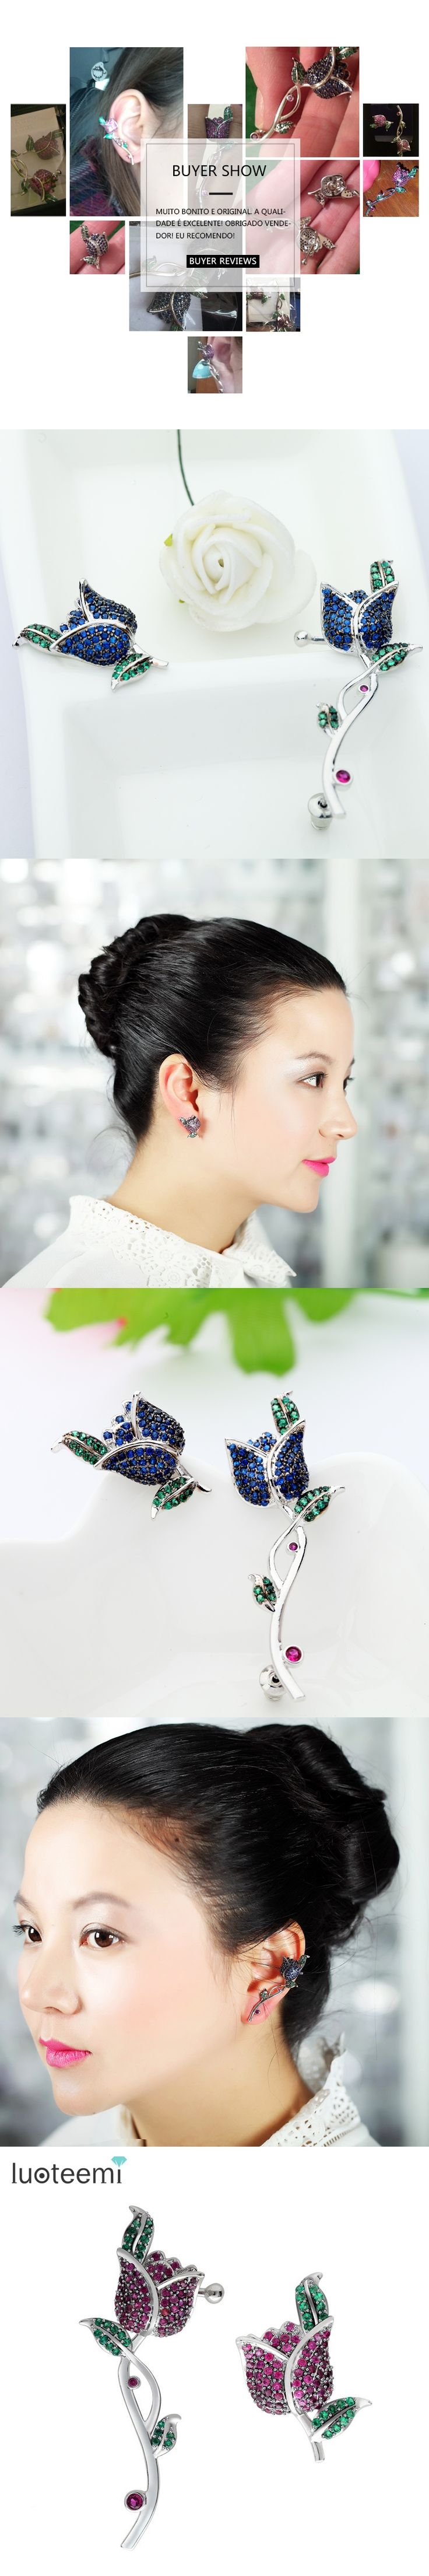 LUOTEEMI New Fashion Asymmetry Brass Material CZ Micro Pave Rose Flower Charming Bar Jewelry Earrings For Women Wedding Party